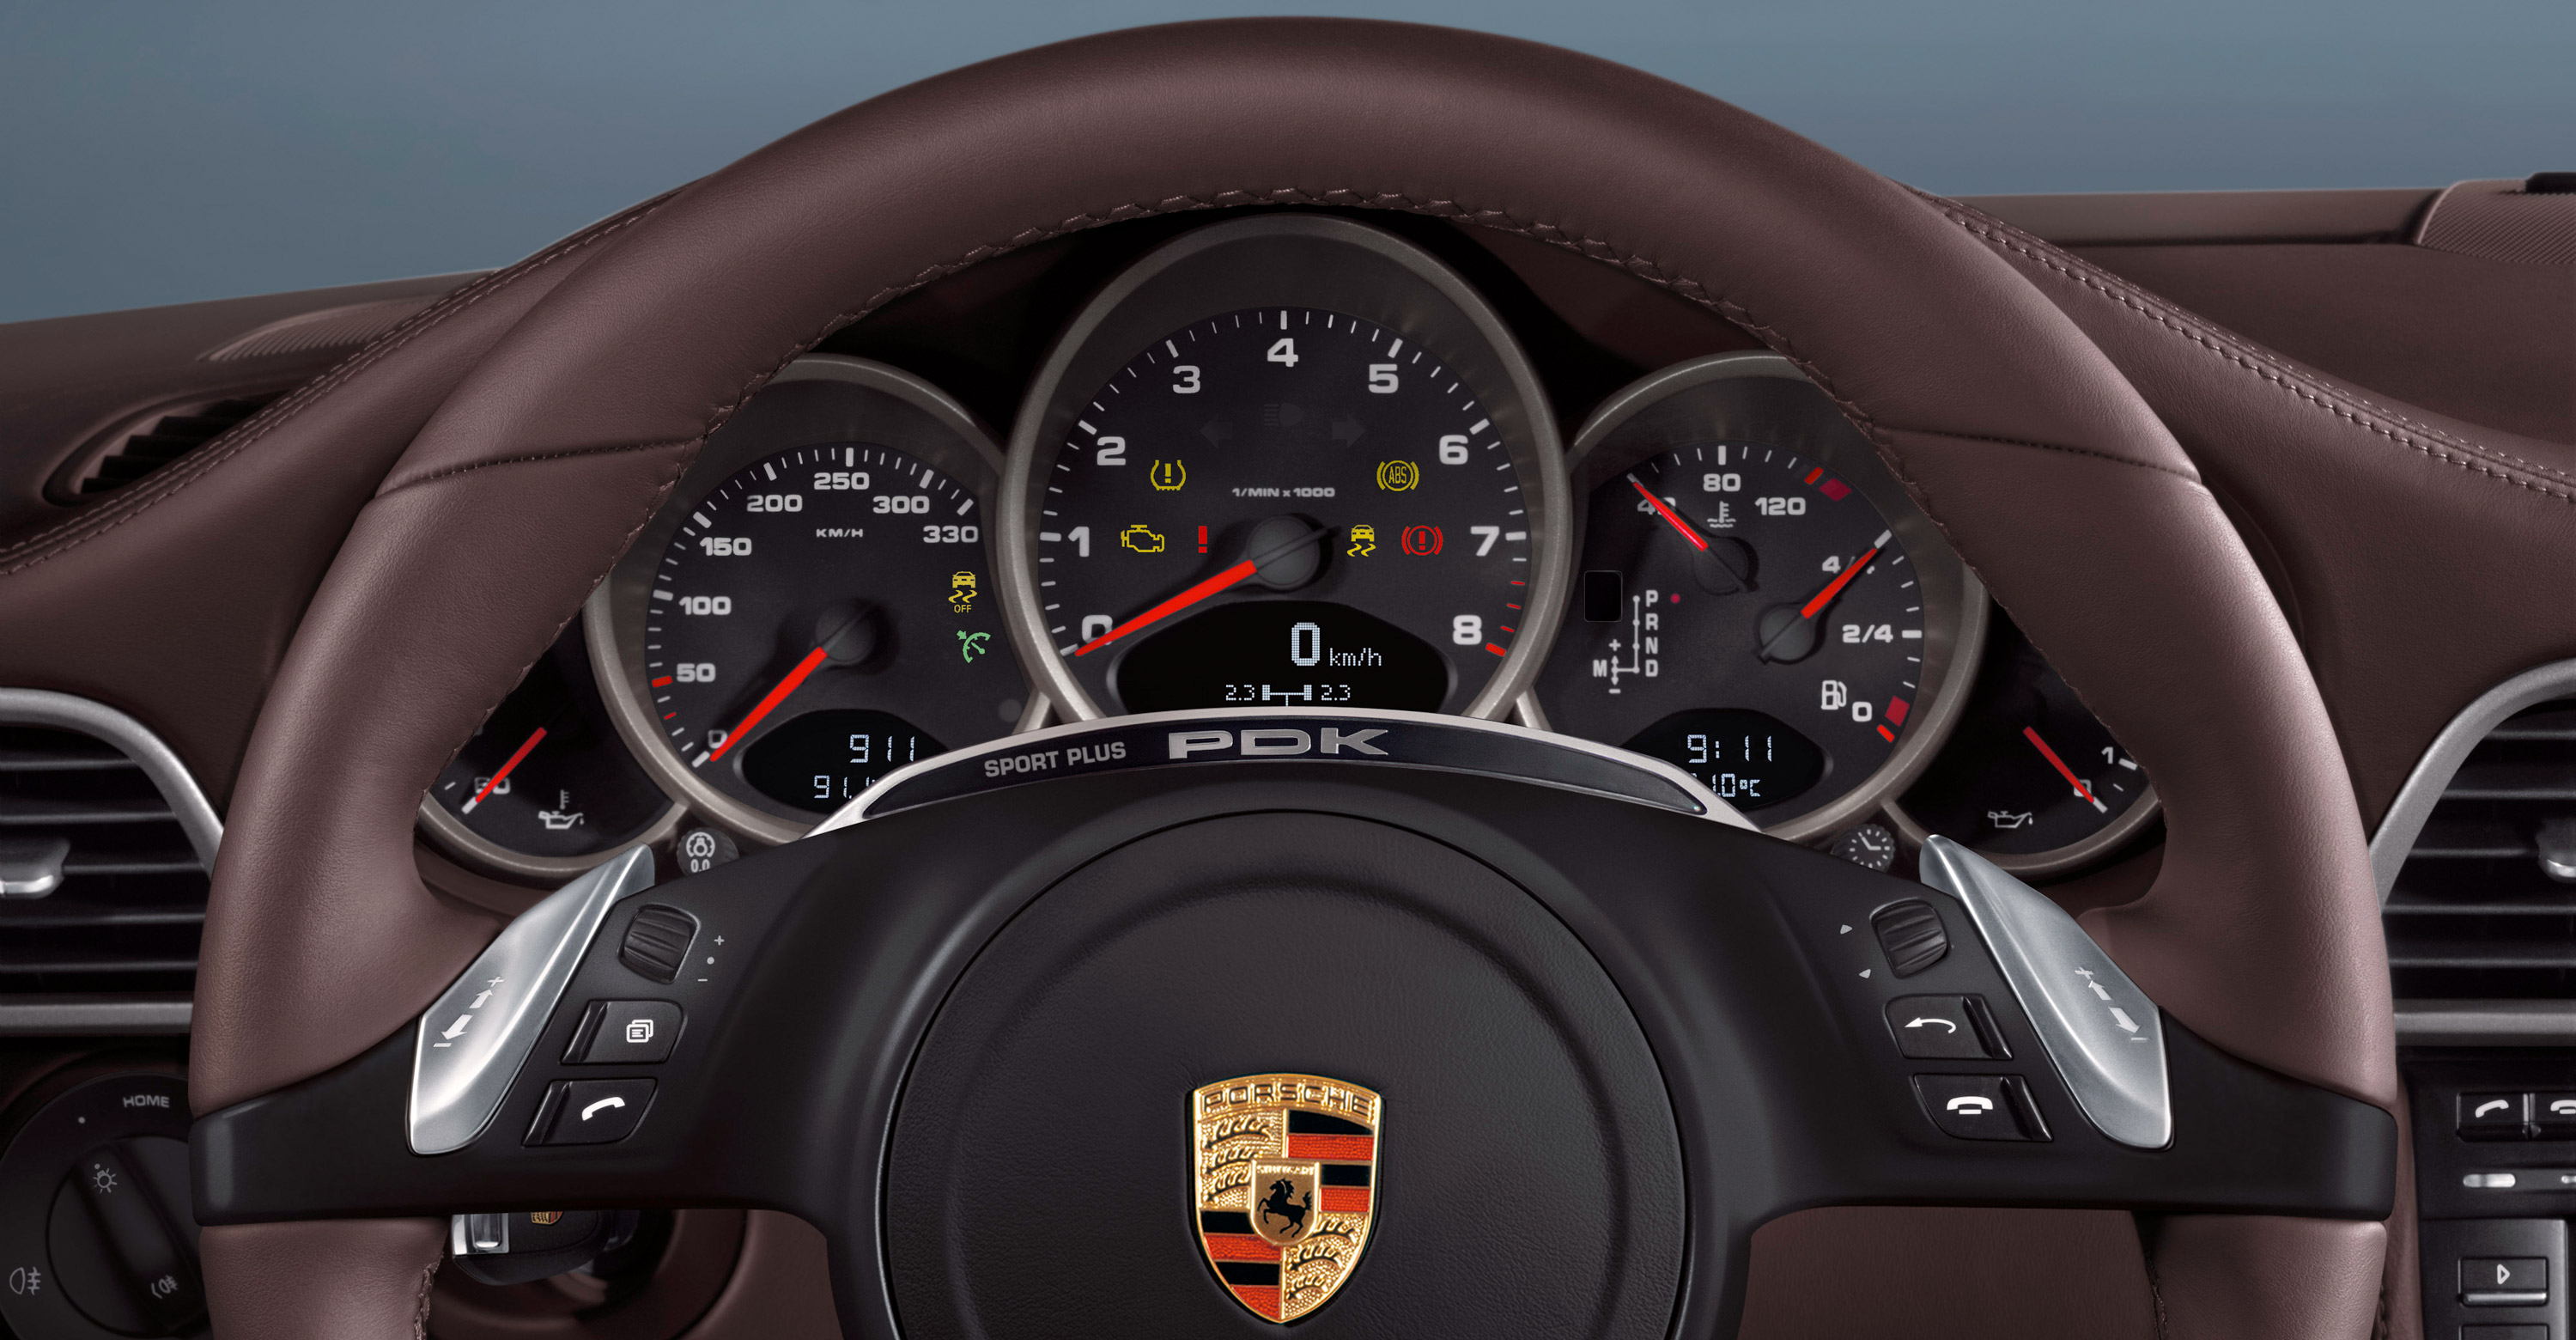 2011 Porsche 911 carrera 4 GTS - Interior, Dashboard